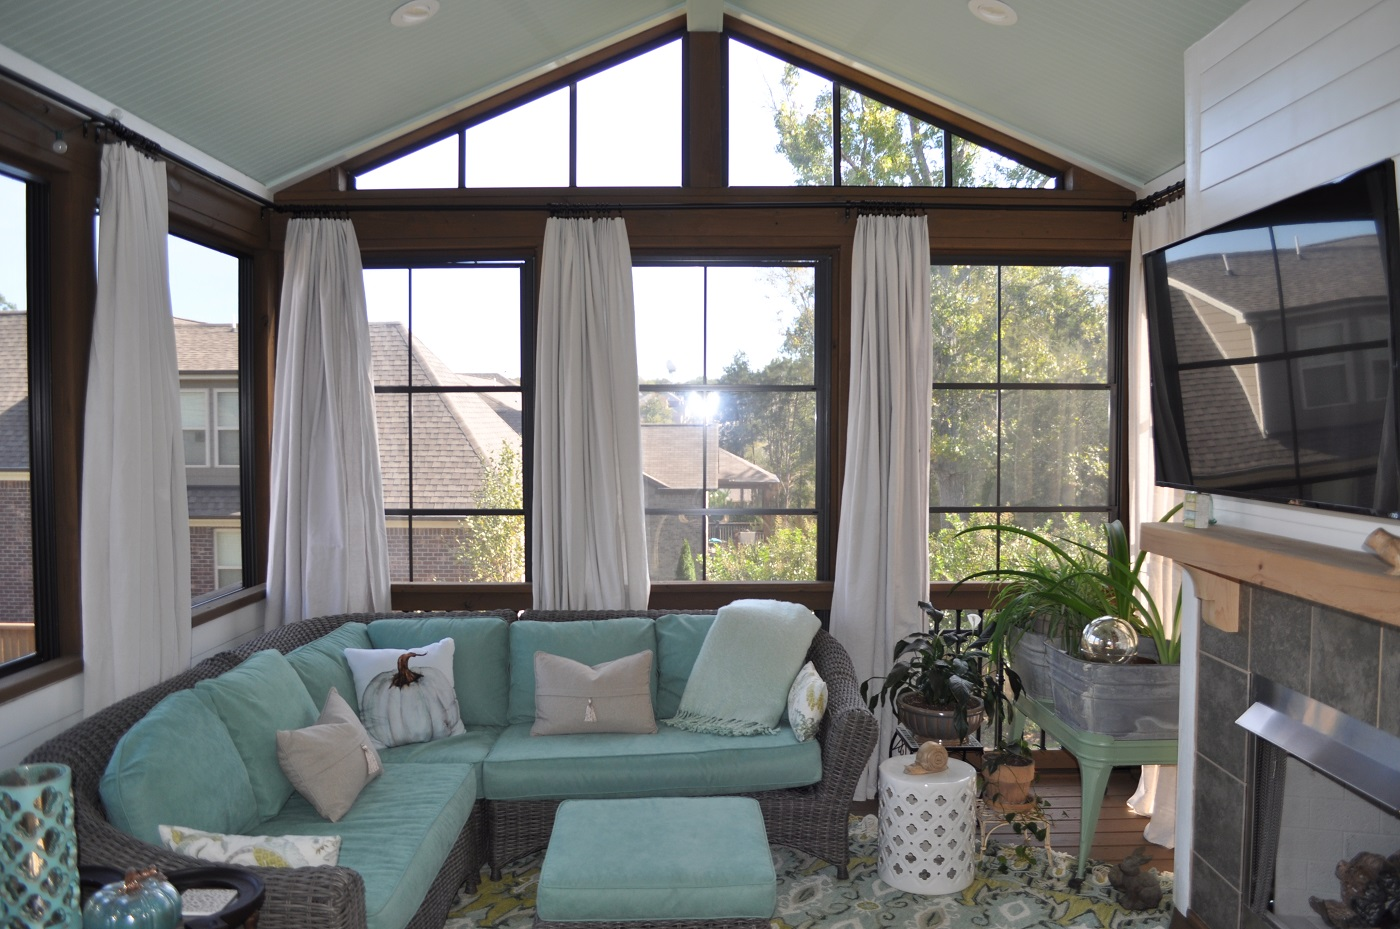 Do You Want a Nashville Screened in Porch 3Season Room